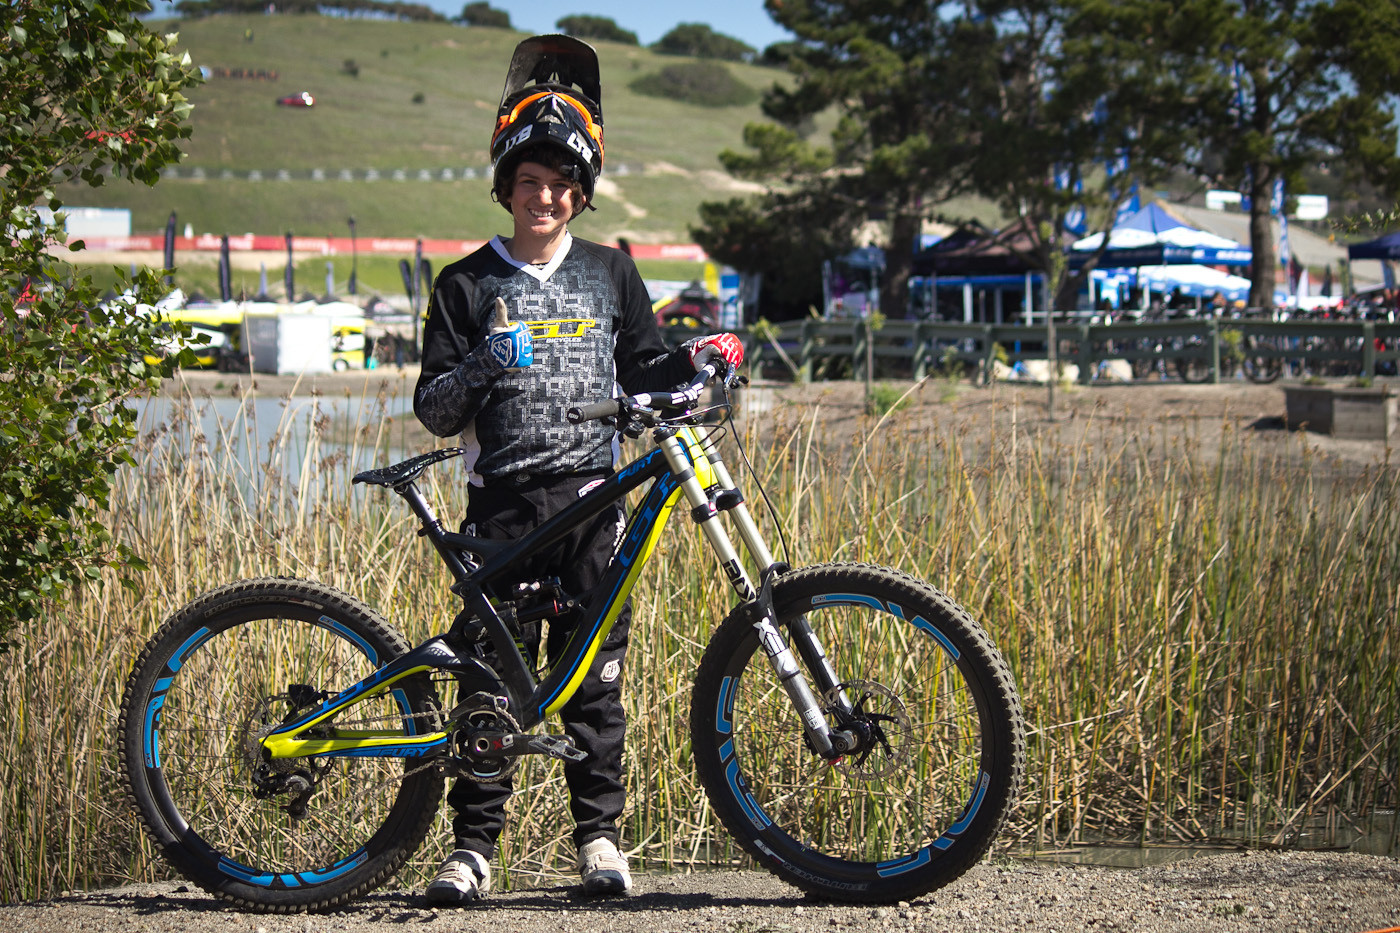 World's First XS GT Fury - Sea Otter Classic - 2014 Sea Otter Classic Pit Bits - Final Edition - Mountain Biking Pictures - Vital MTB